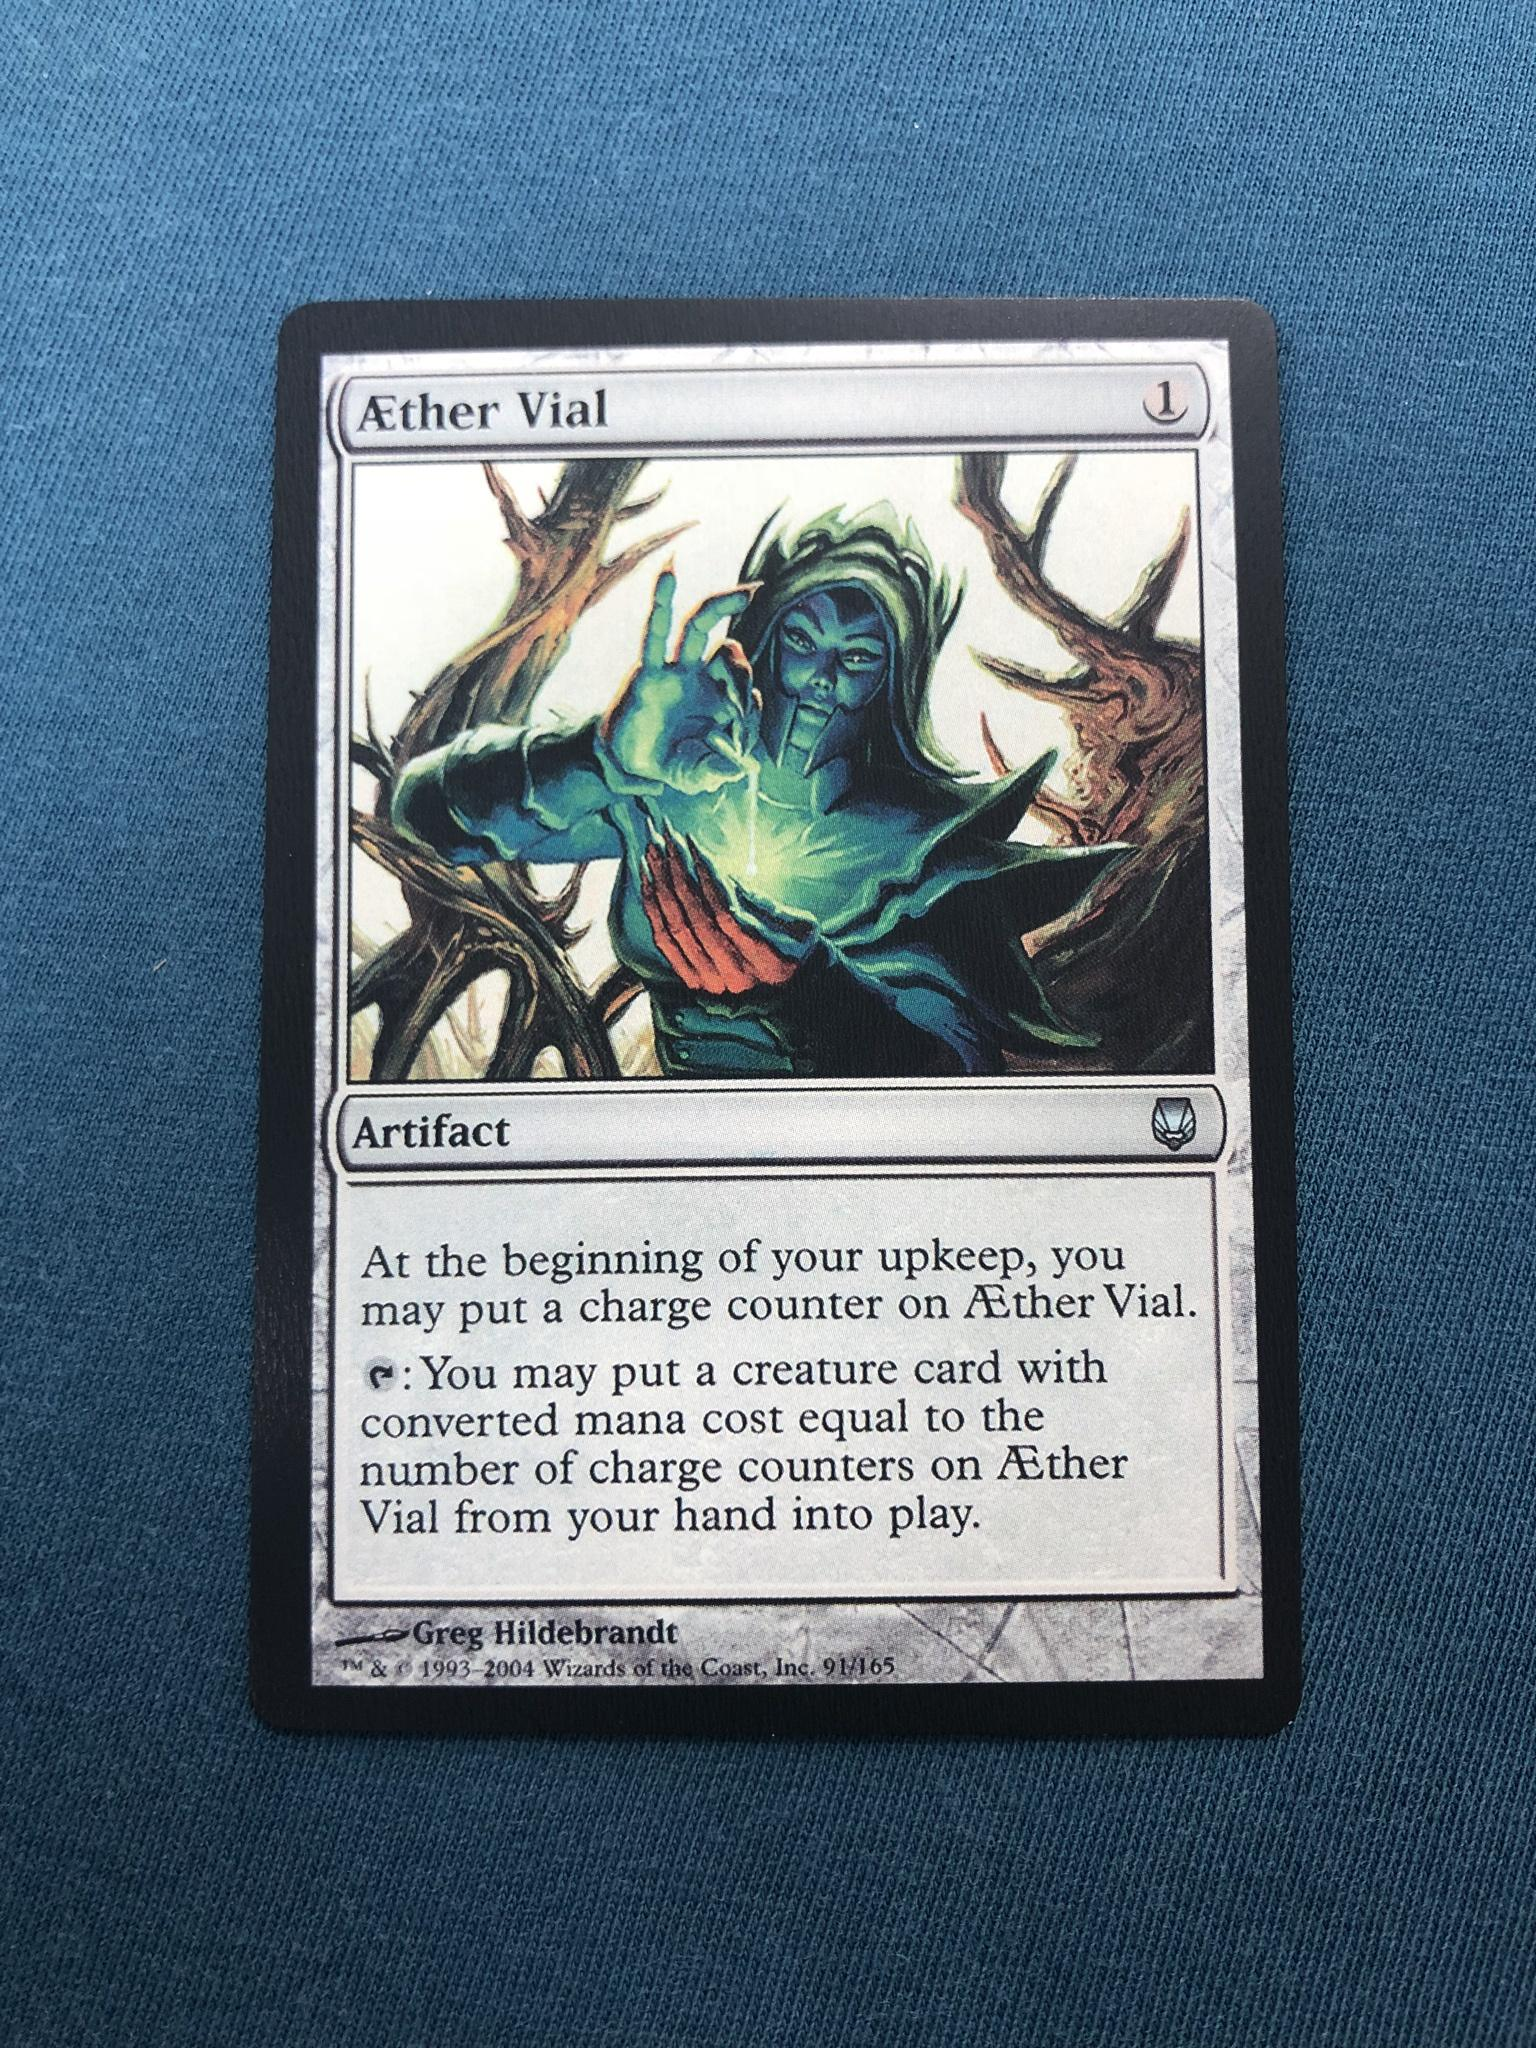 Aether vial Darksteel DST proxy mtg proxies proxy magic the gathering proxies cards FNM GP playable quality